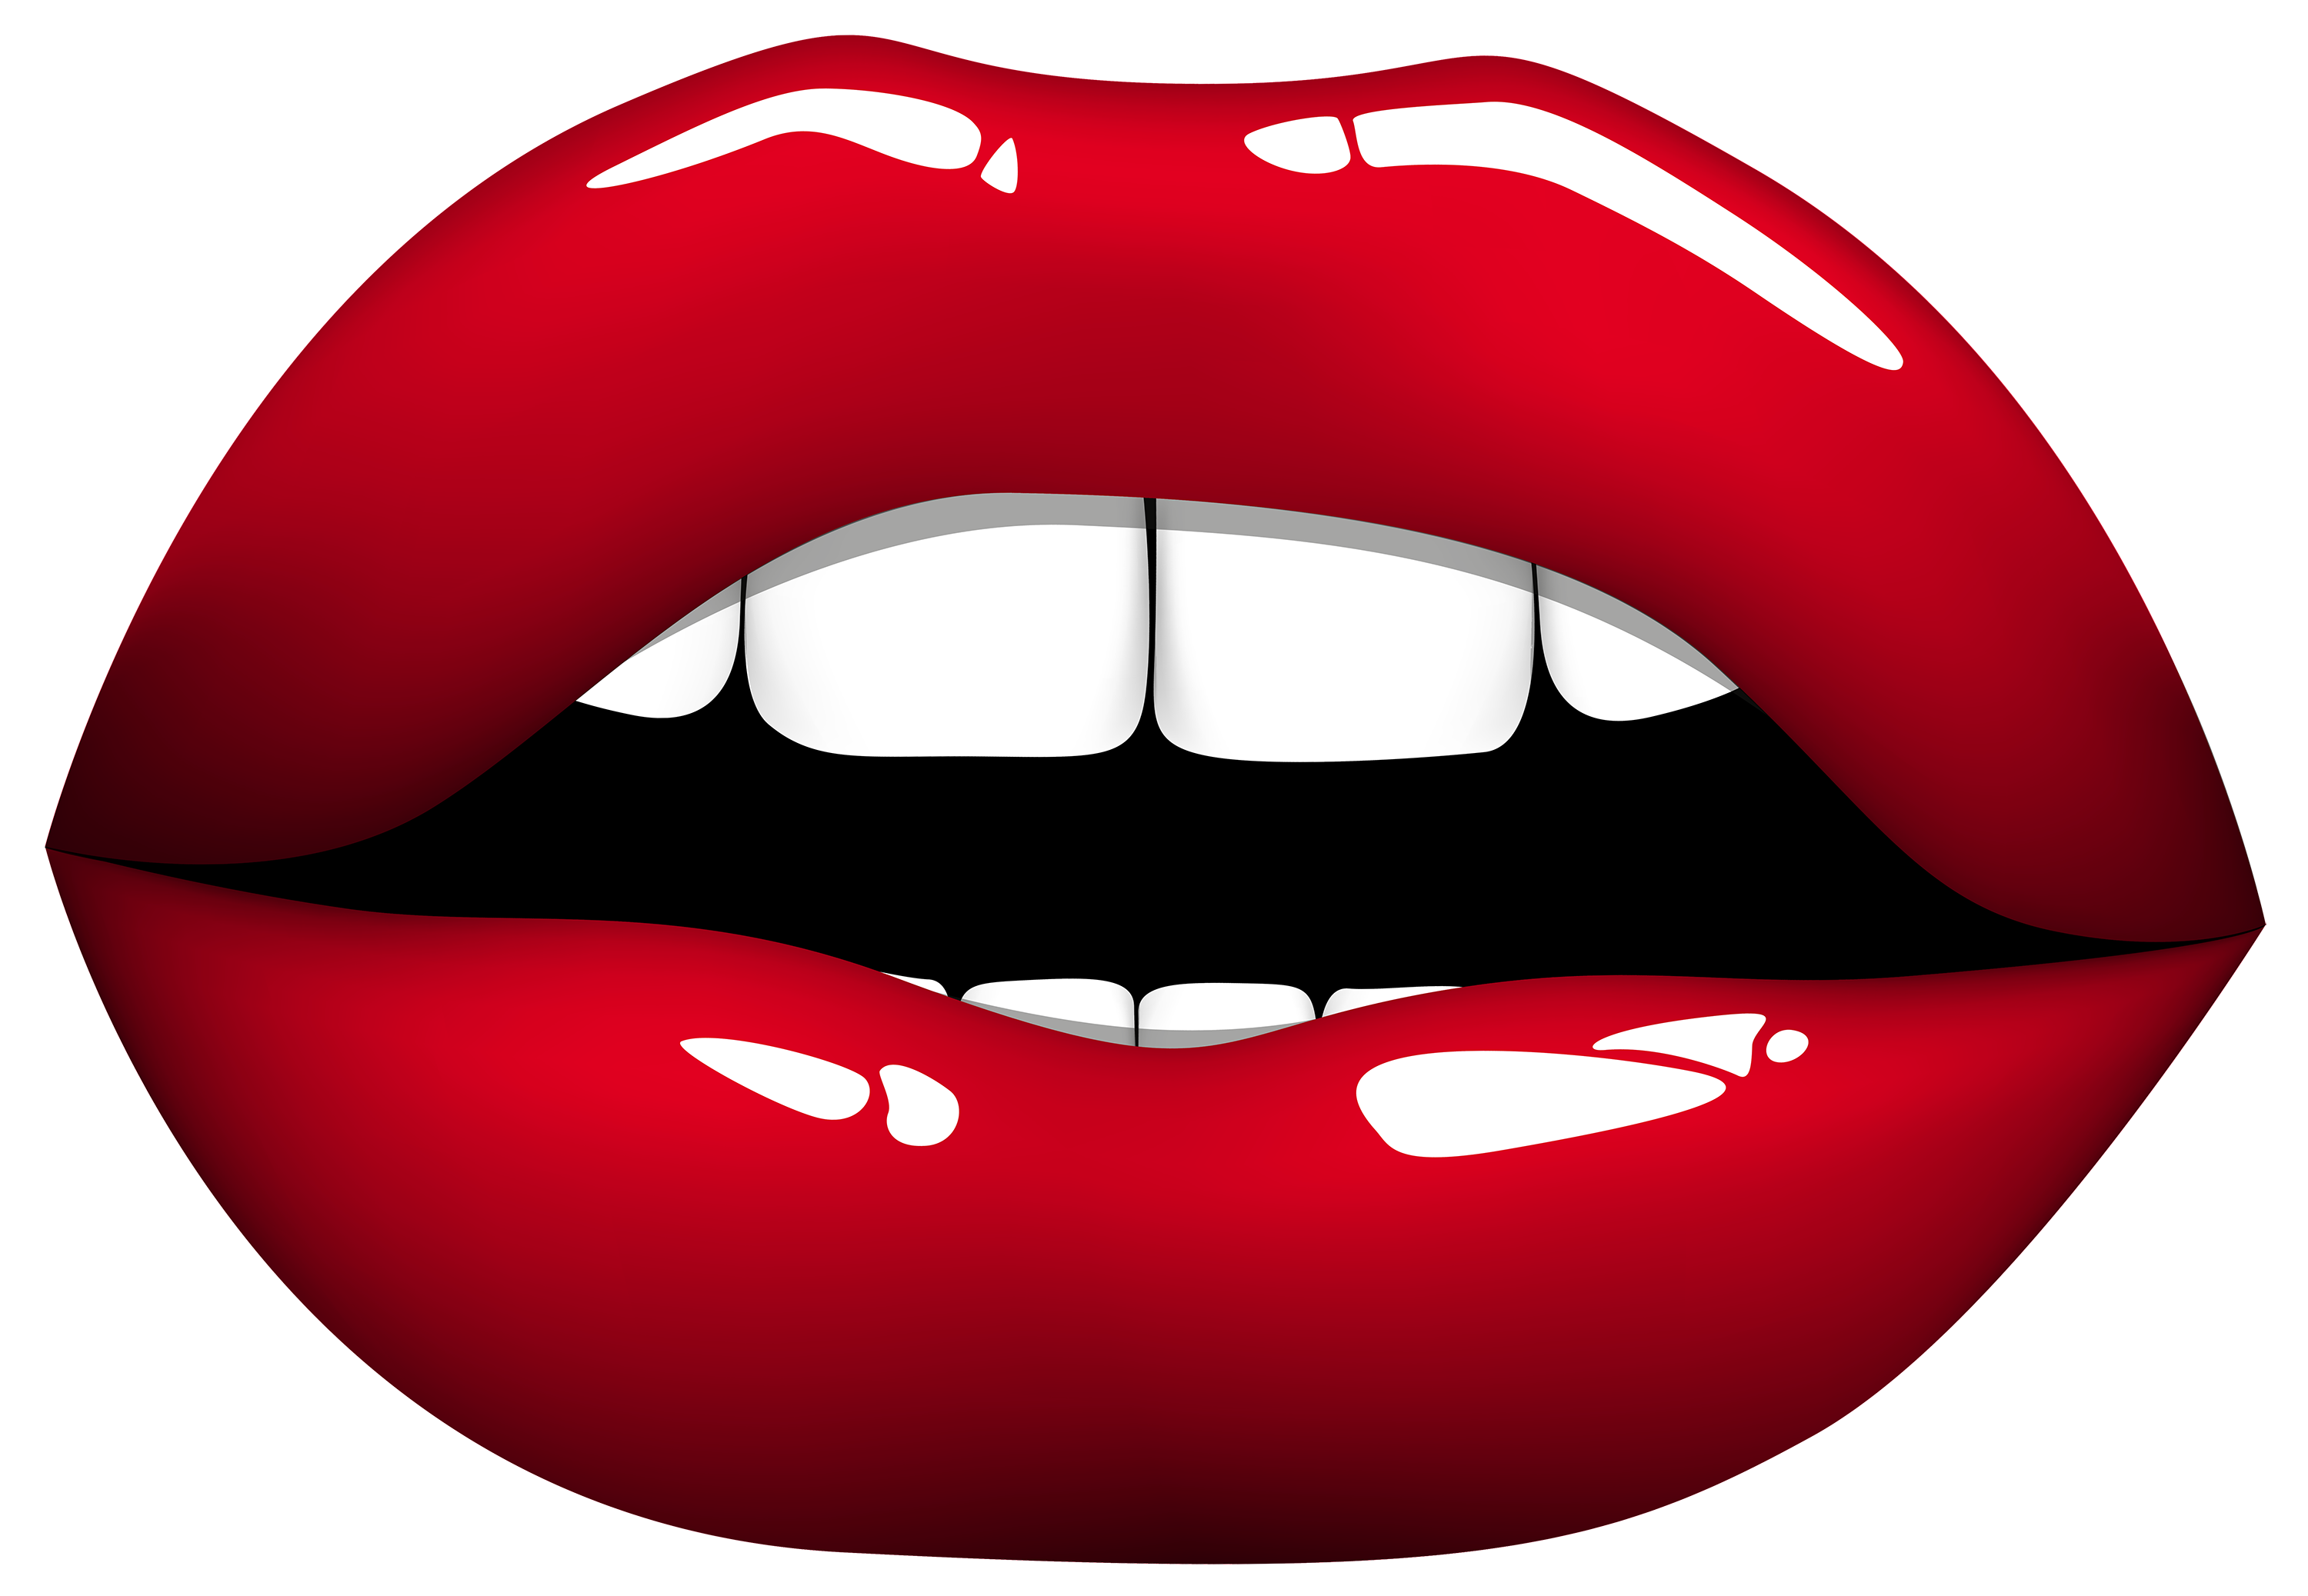 Clipart mustache lipstick. Red lips png best